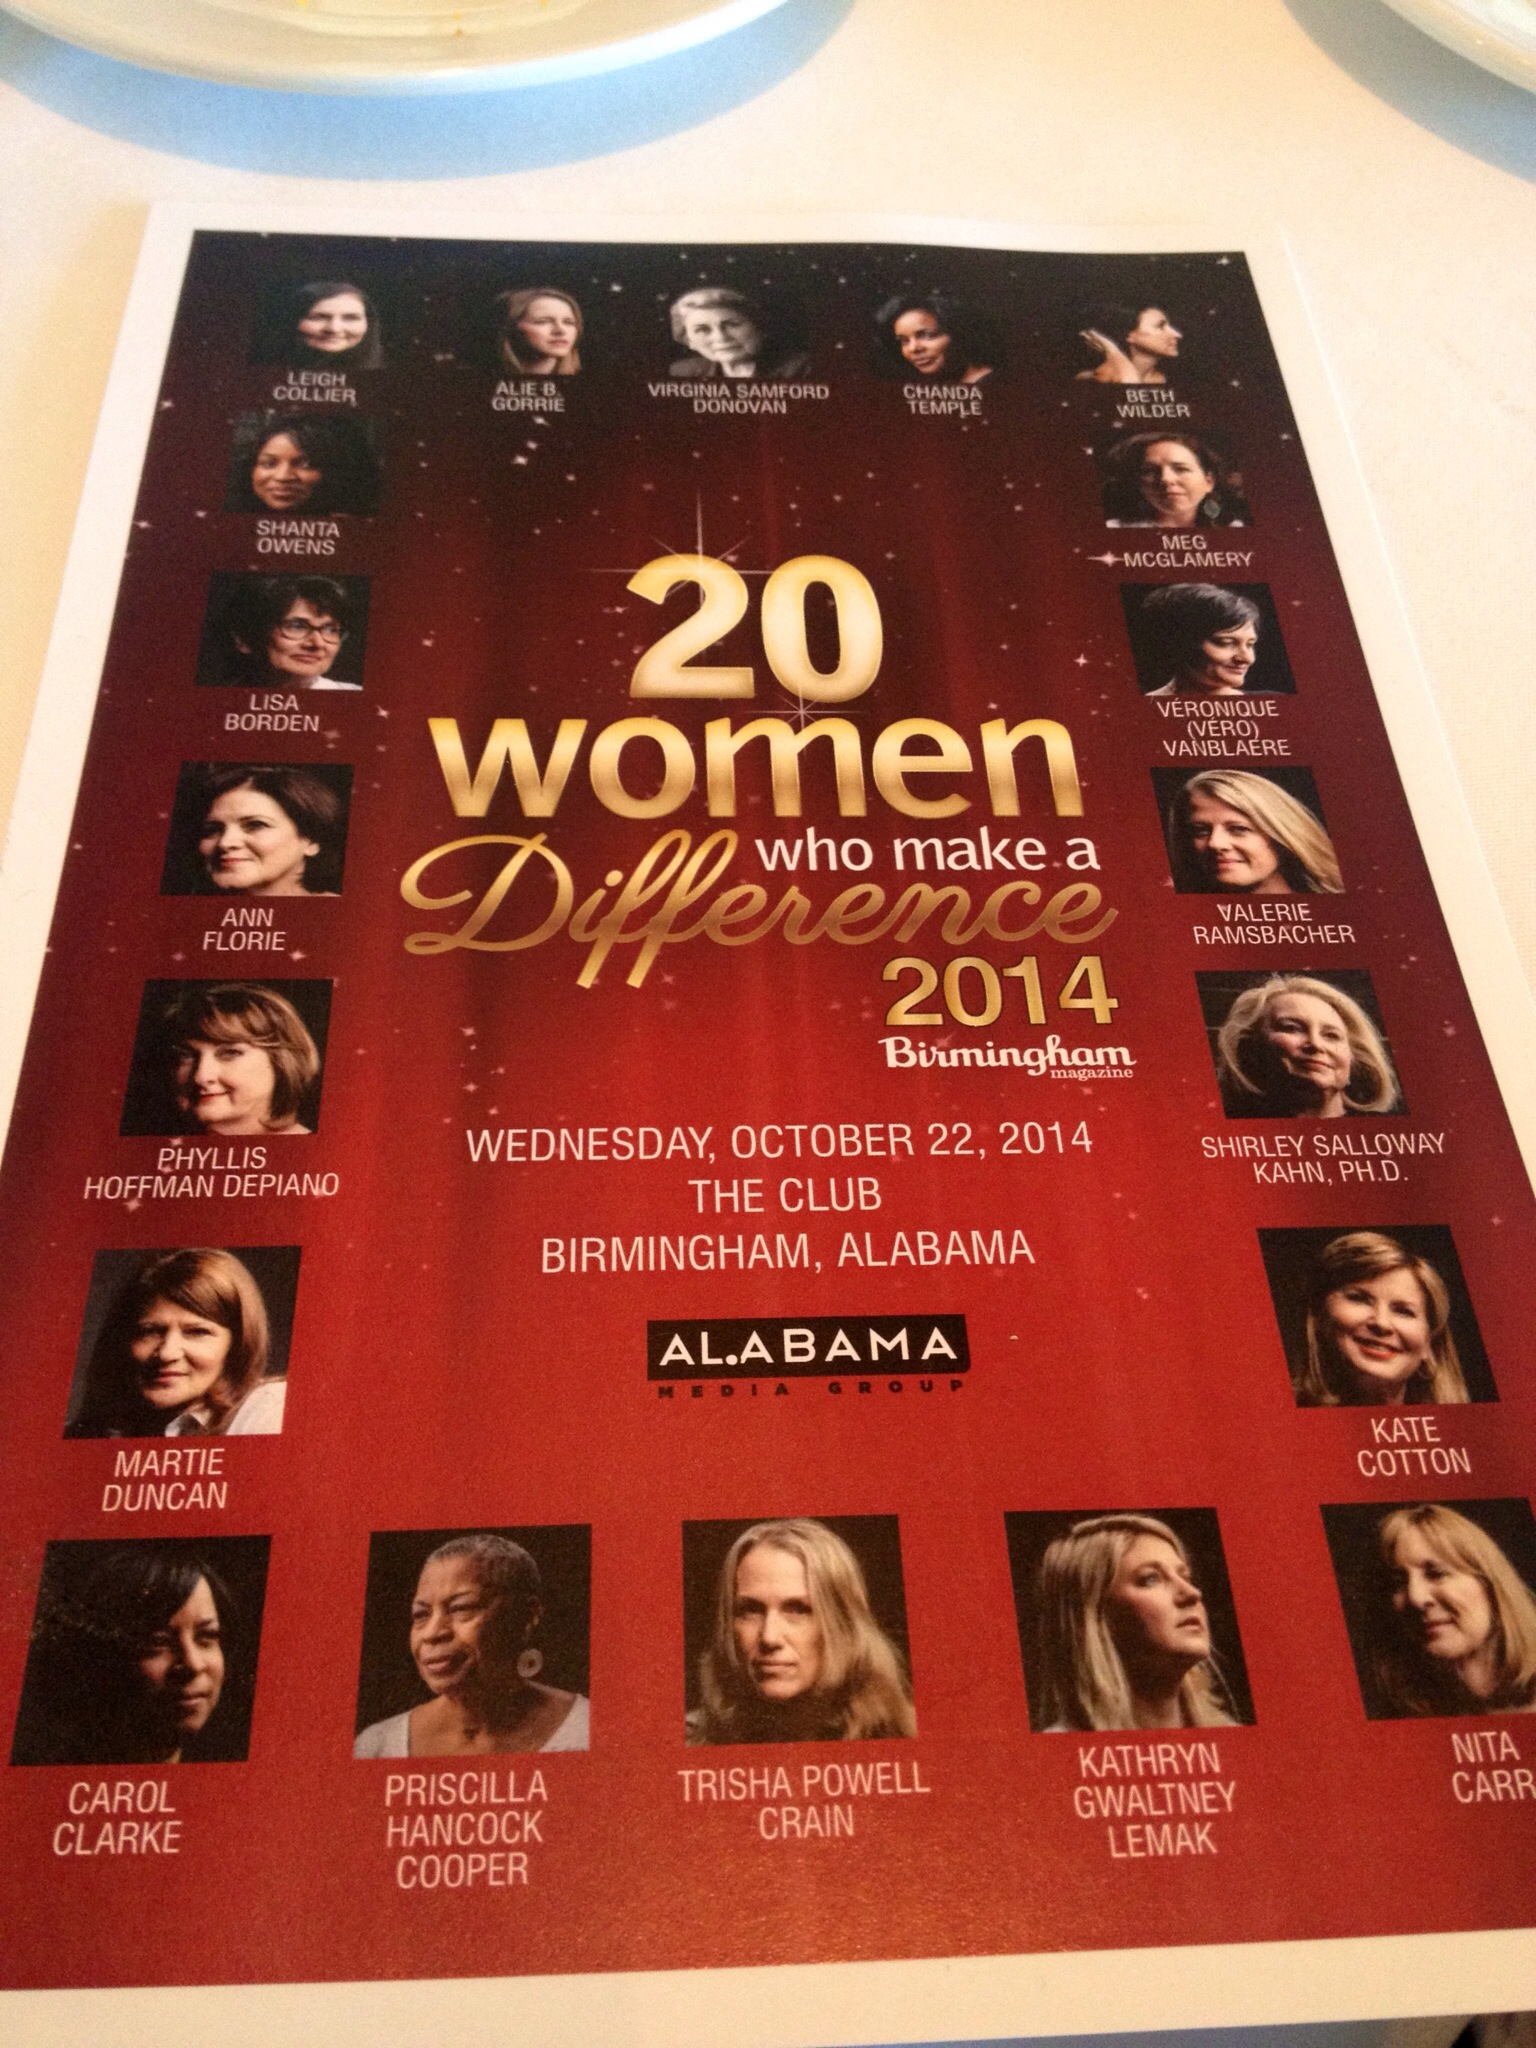 20 women making a difference Birmingham Alabama 2014 class Martie Duncan